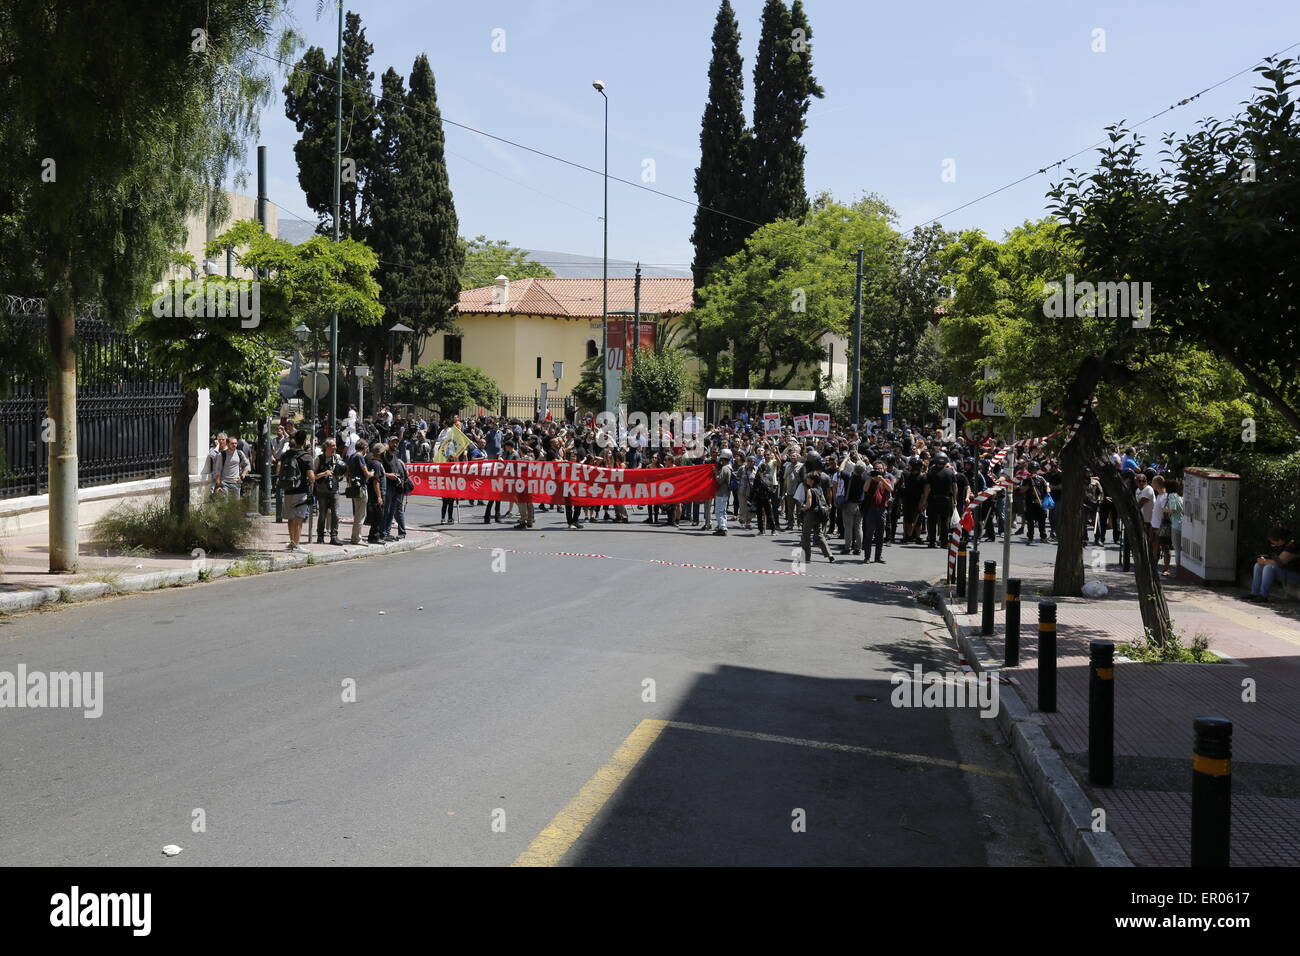 Athens, Greece. 23rd May, 2015. The protesters have assembled on the foot of the street leading to the German Embassy, - Stock Image